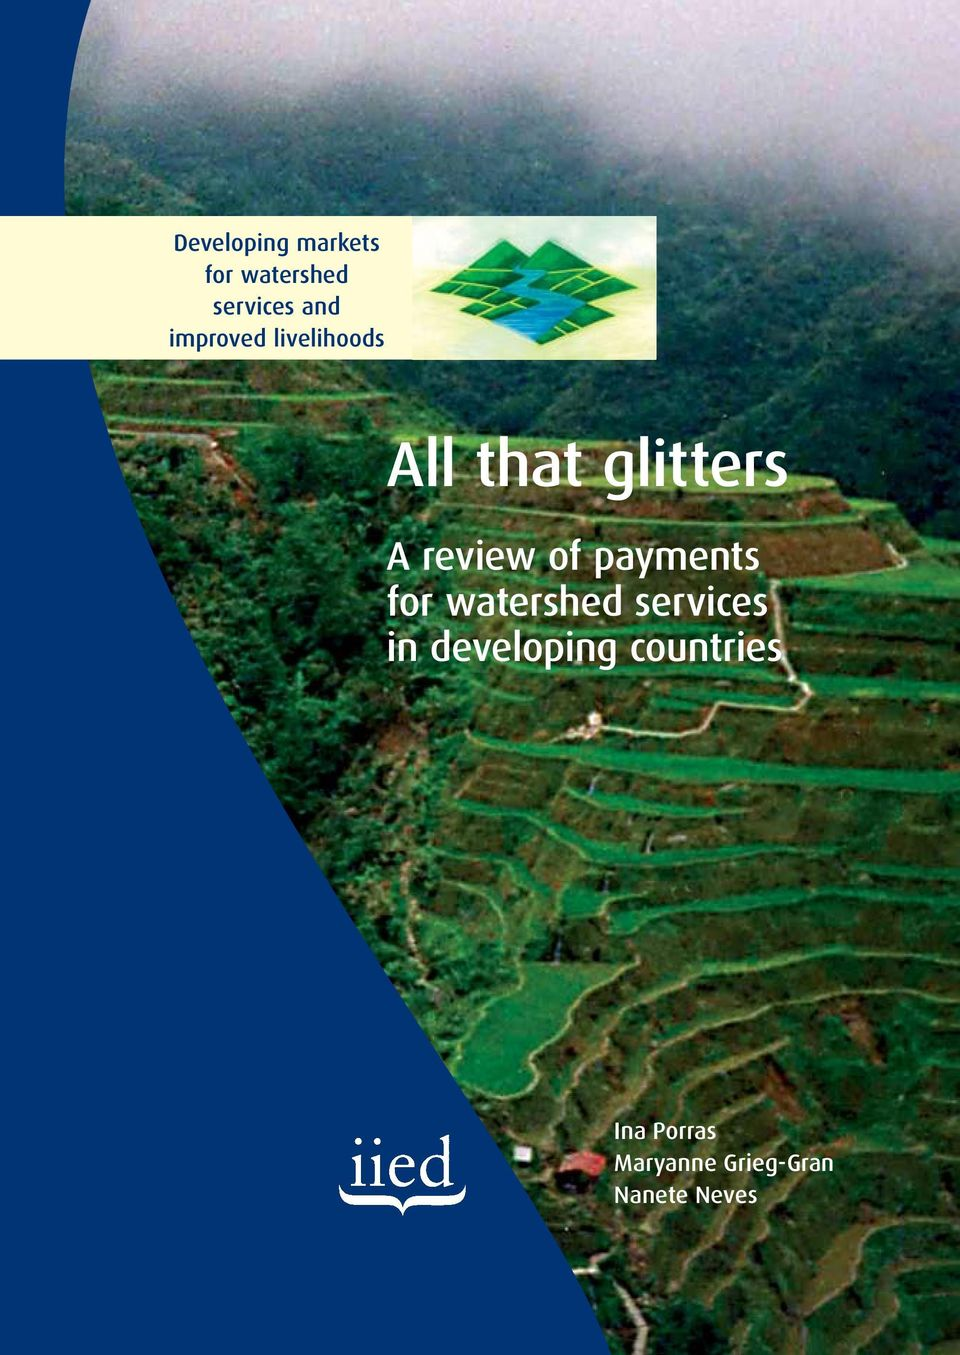 of payments for watershed services in developing